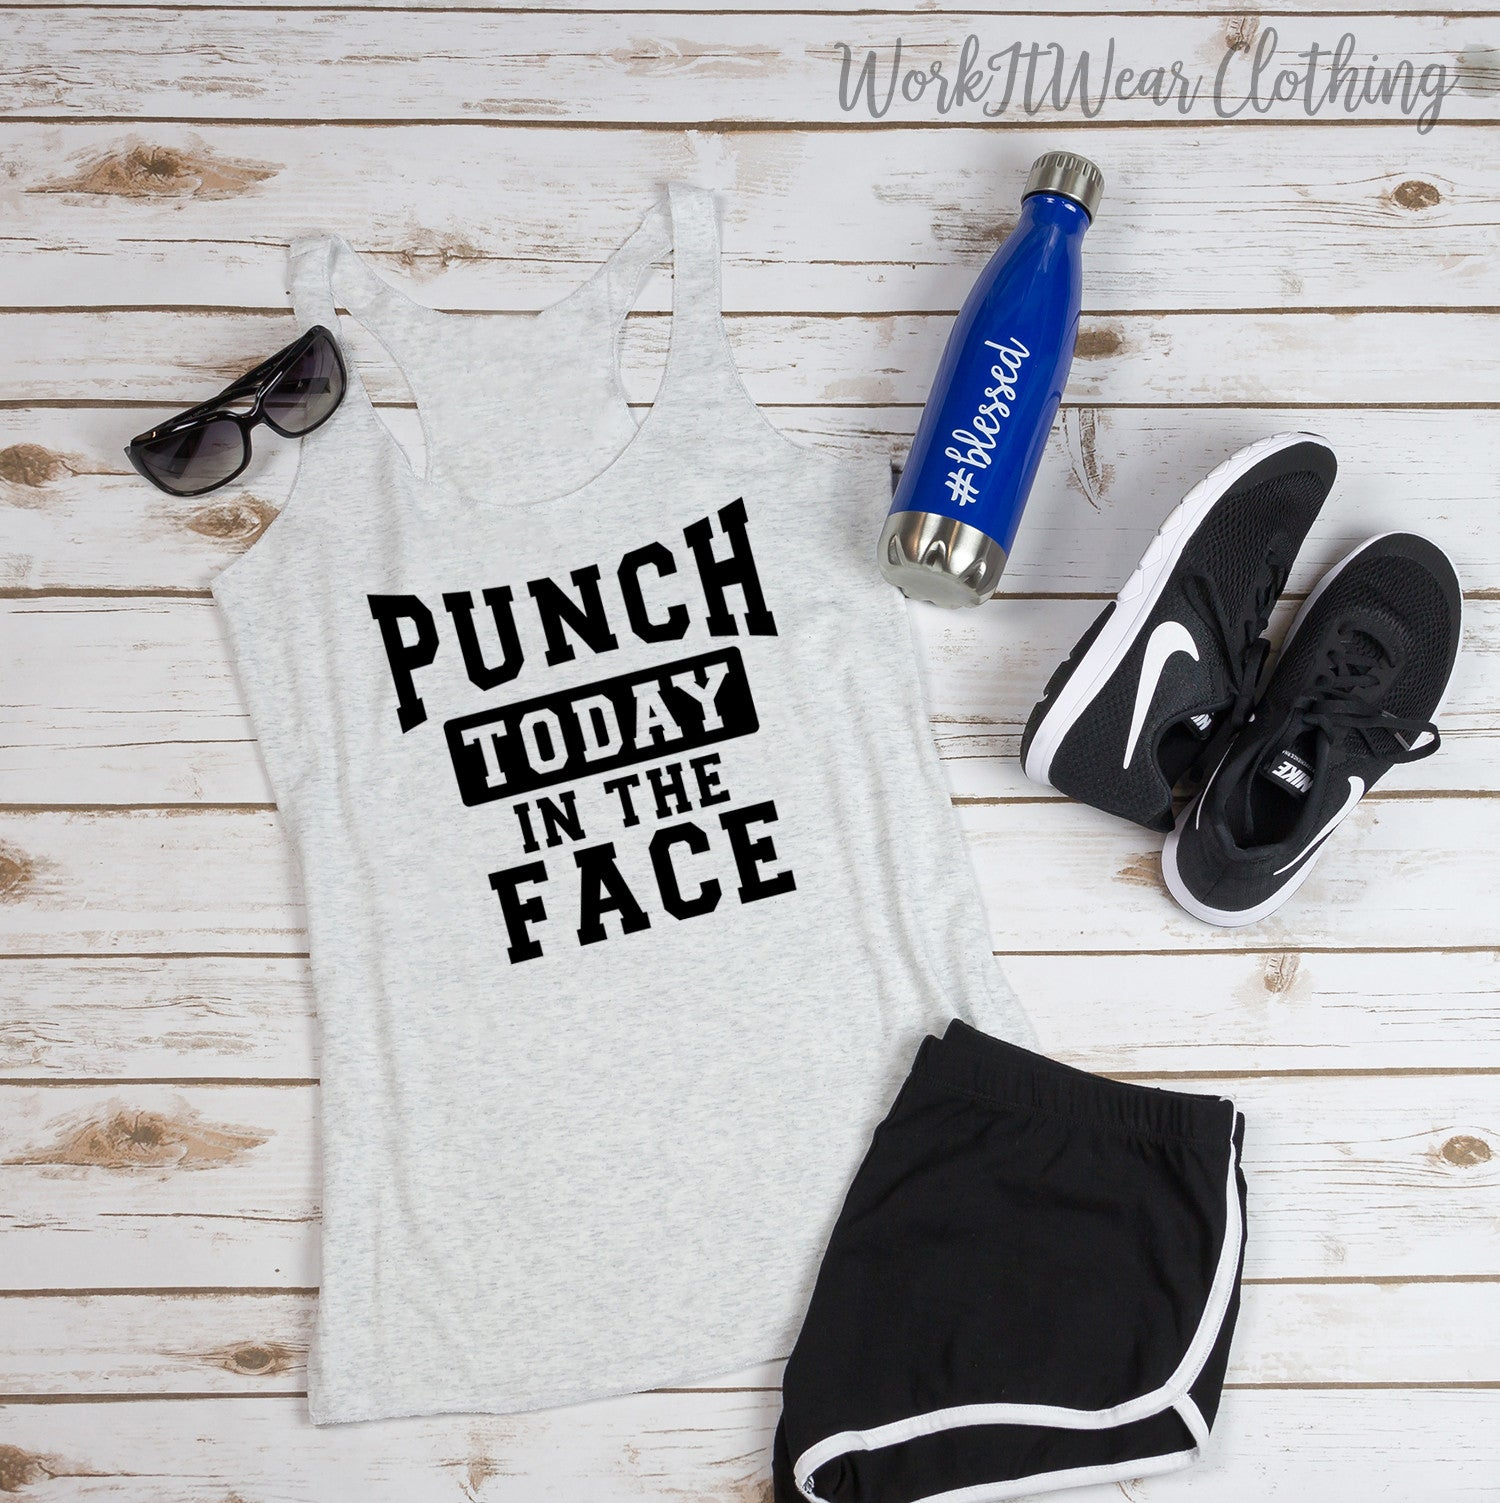 Punch Today In The Face Tank Top. Get It Done. Handle It. Workout Tank. Gym Shirt Fitness Tank. Boxing. KickBoxing. Fight Club.